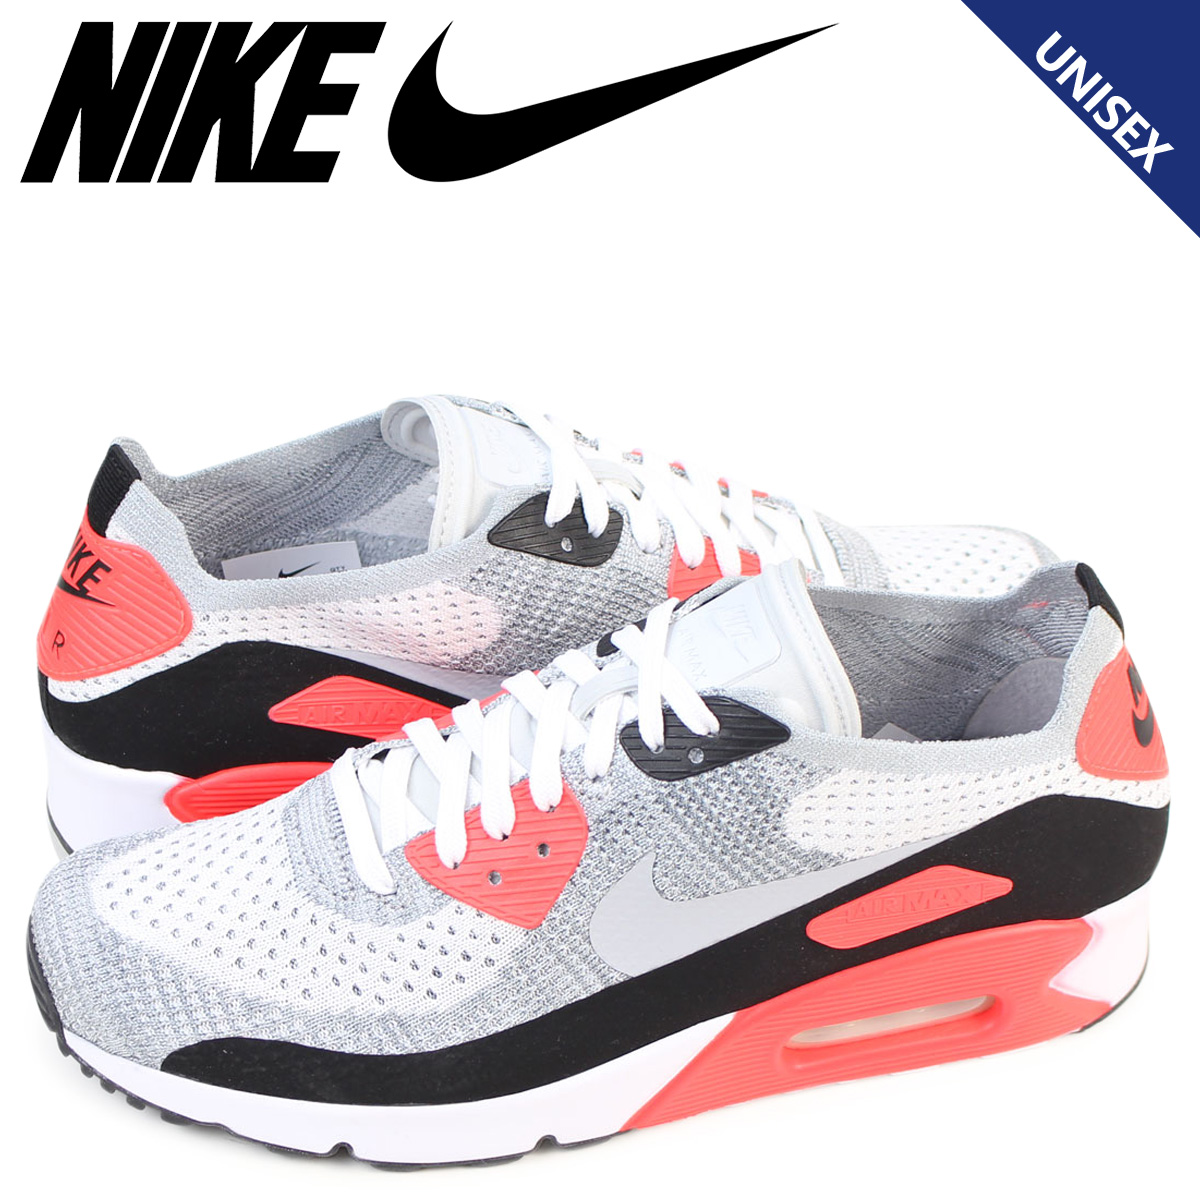 huge discount 614ba 820f5 Nike NIKE Air Max 90 ultra men fly knit sneakers AIR MAX 90 ULTRA 2.0  FLYKNIT 875,943-100 white